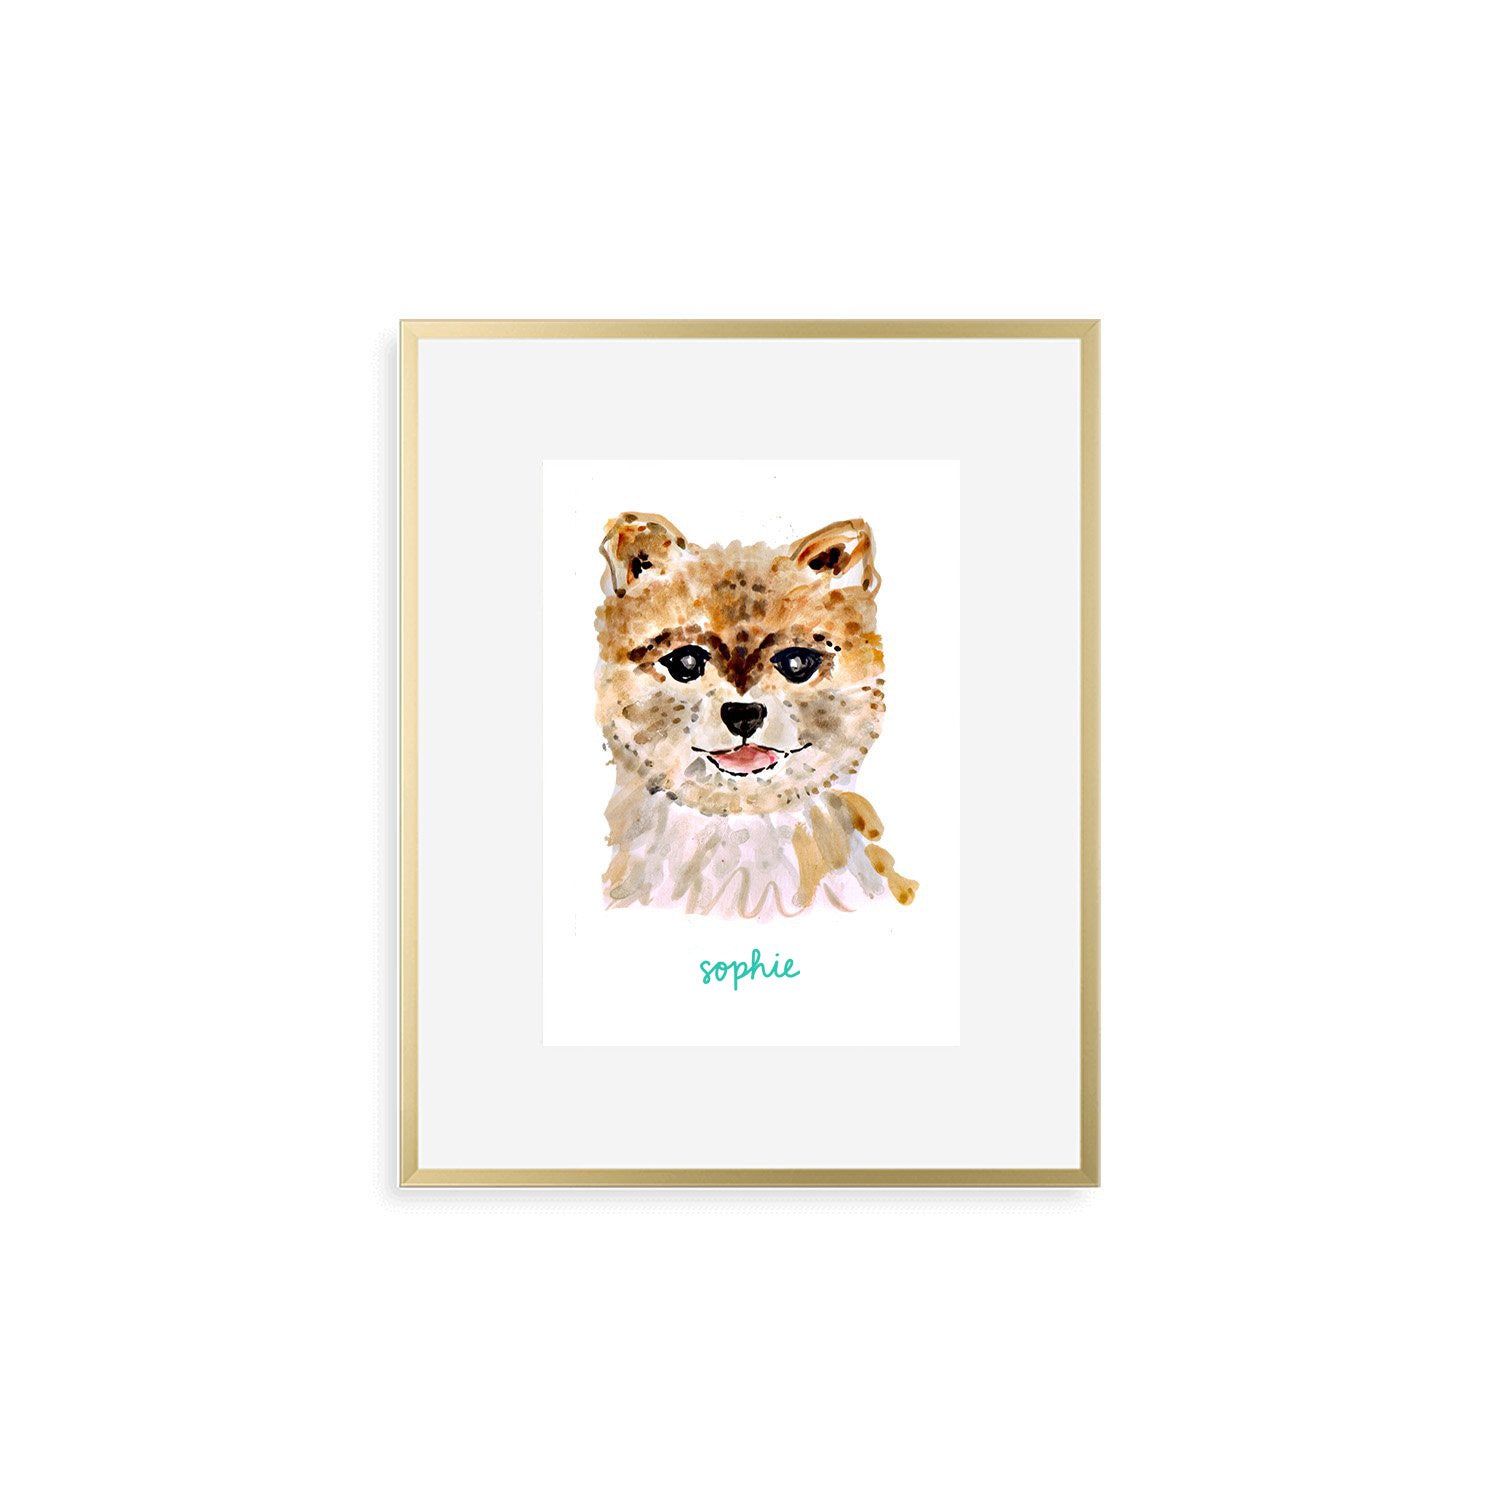 Personalized Dog Print – Evelyn Henson